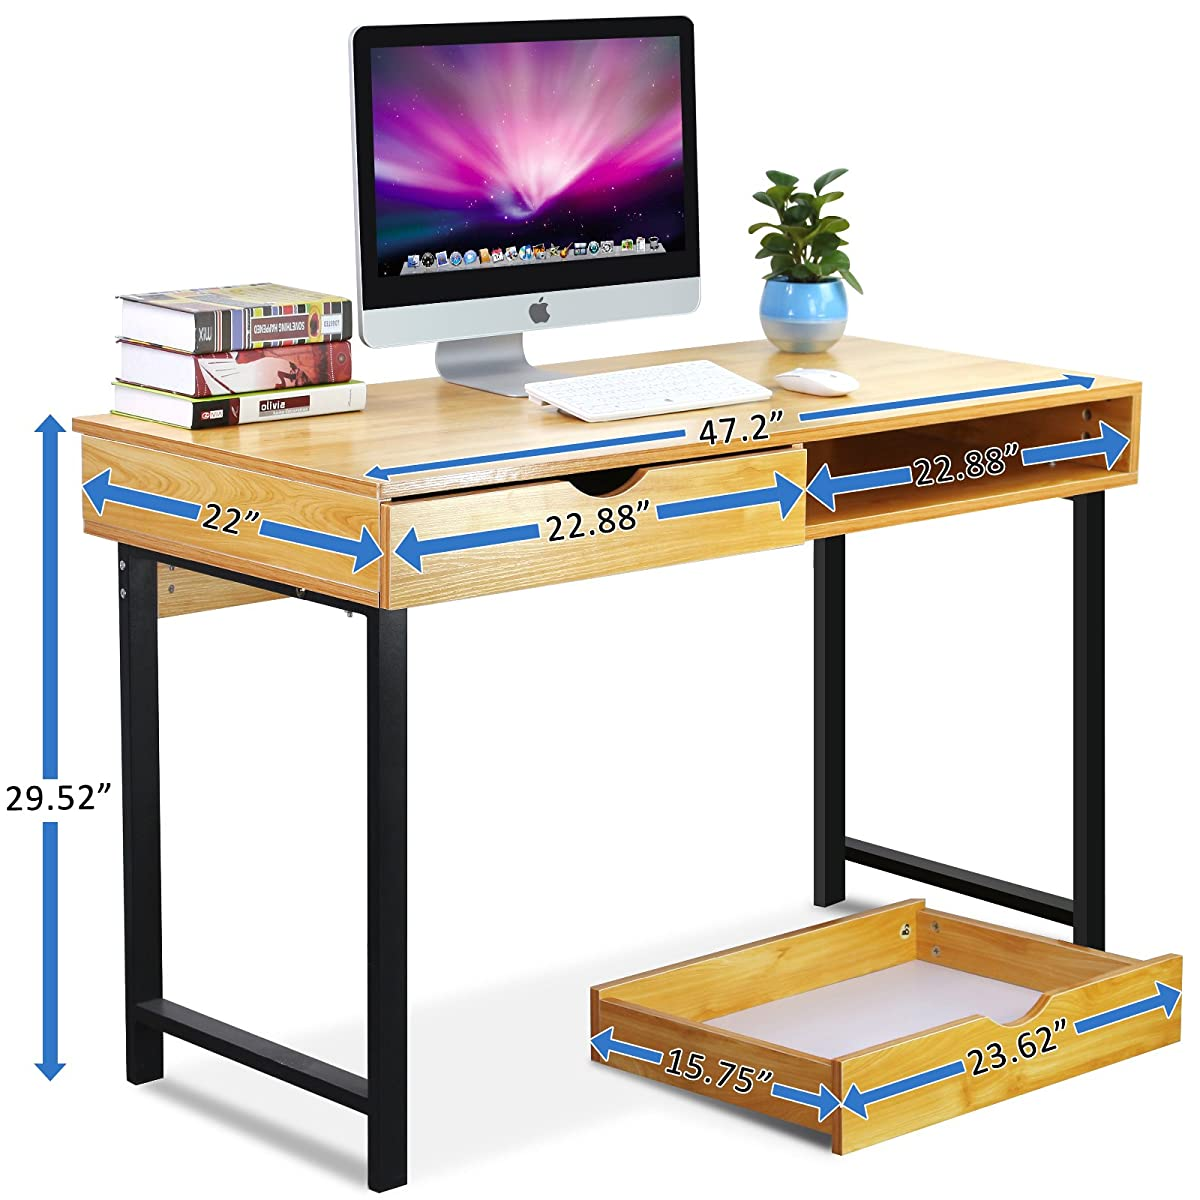 "Tribesigns Computer Desk Modern Stylish 47"" Home Office Study Table Writing Desk Workstation with 2 Drawers, Pear Wood Color"